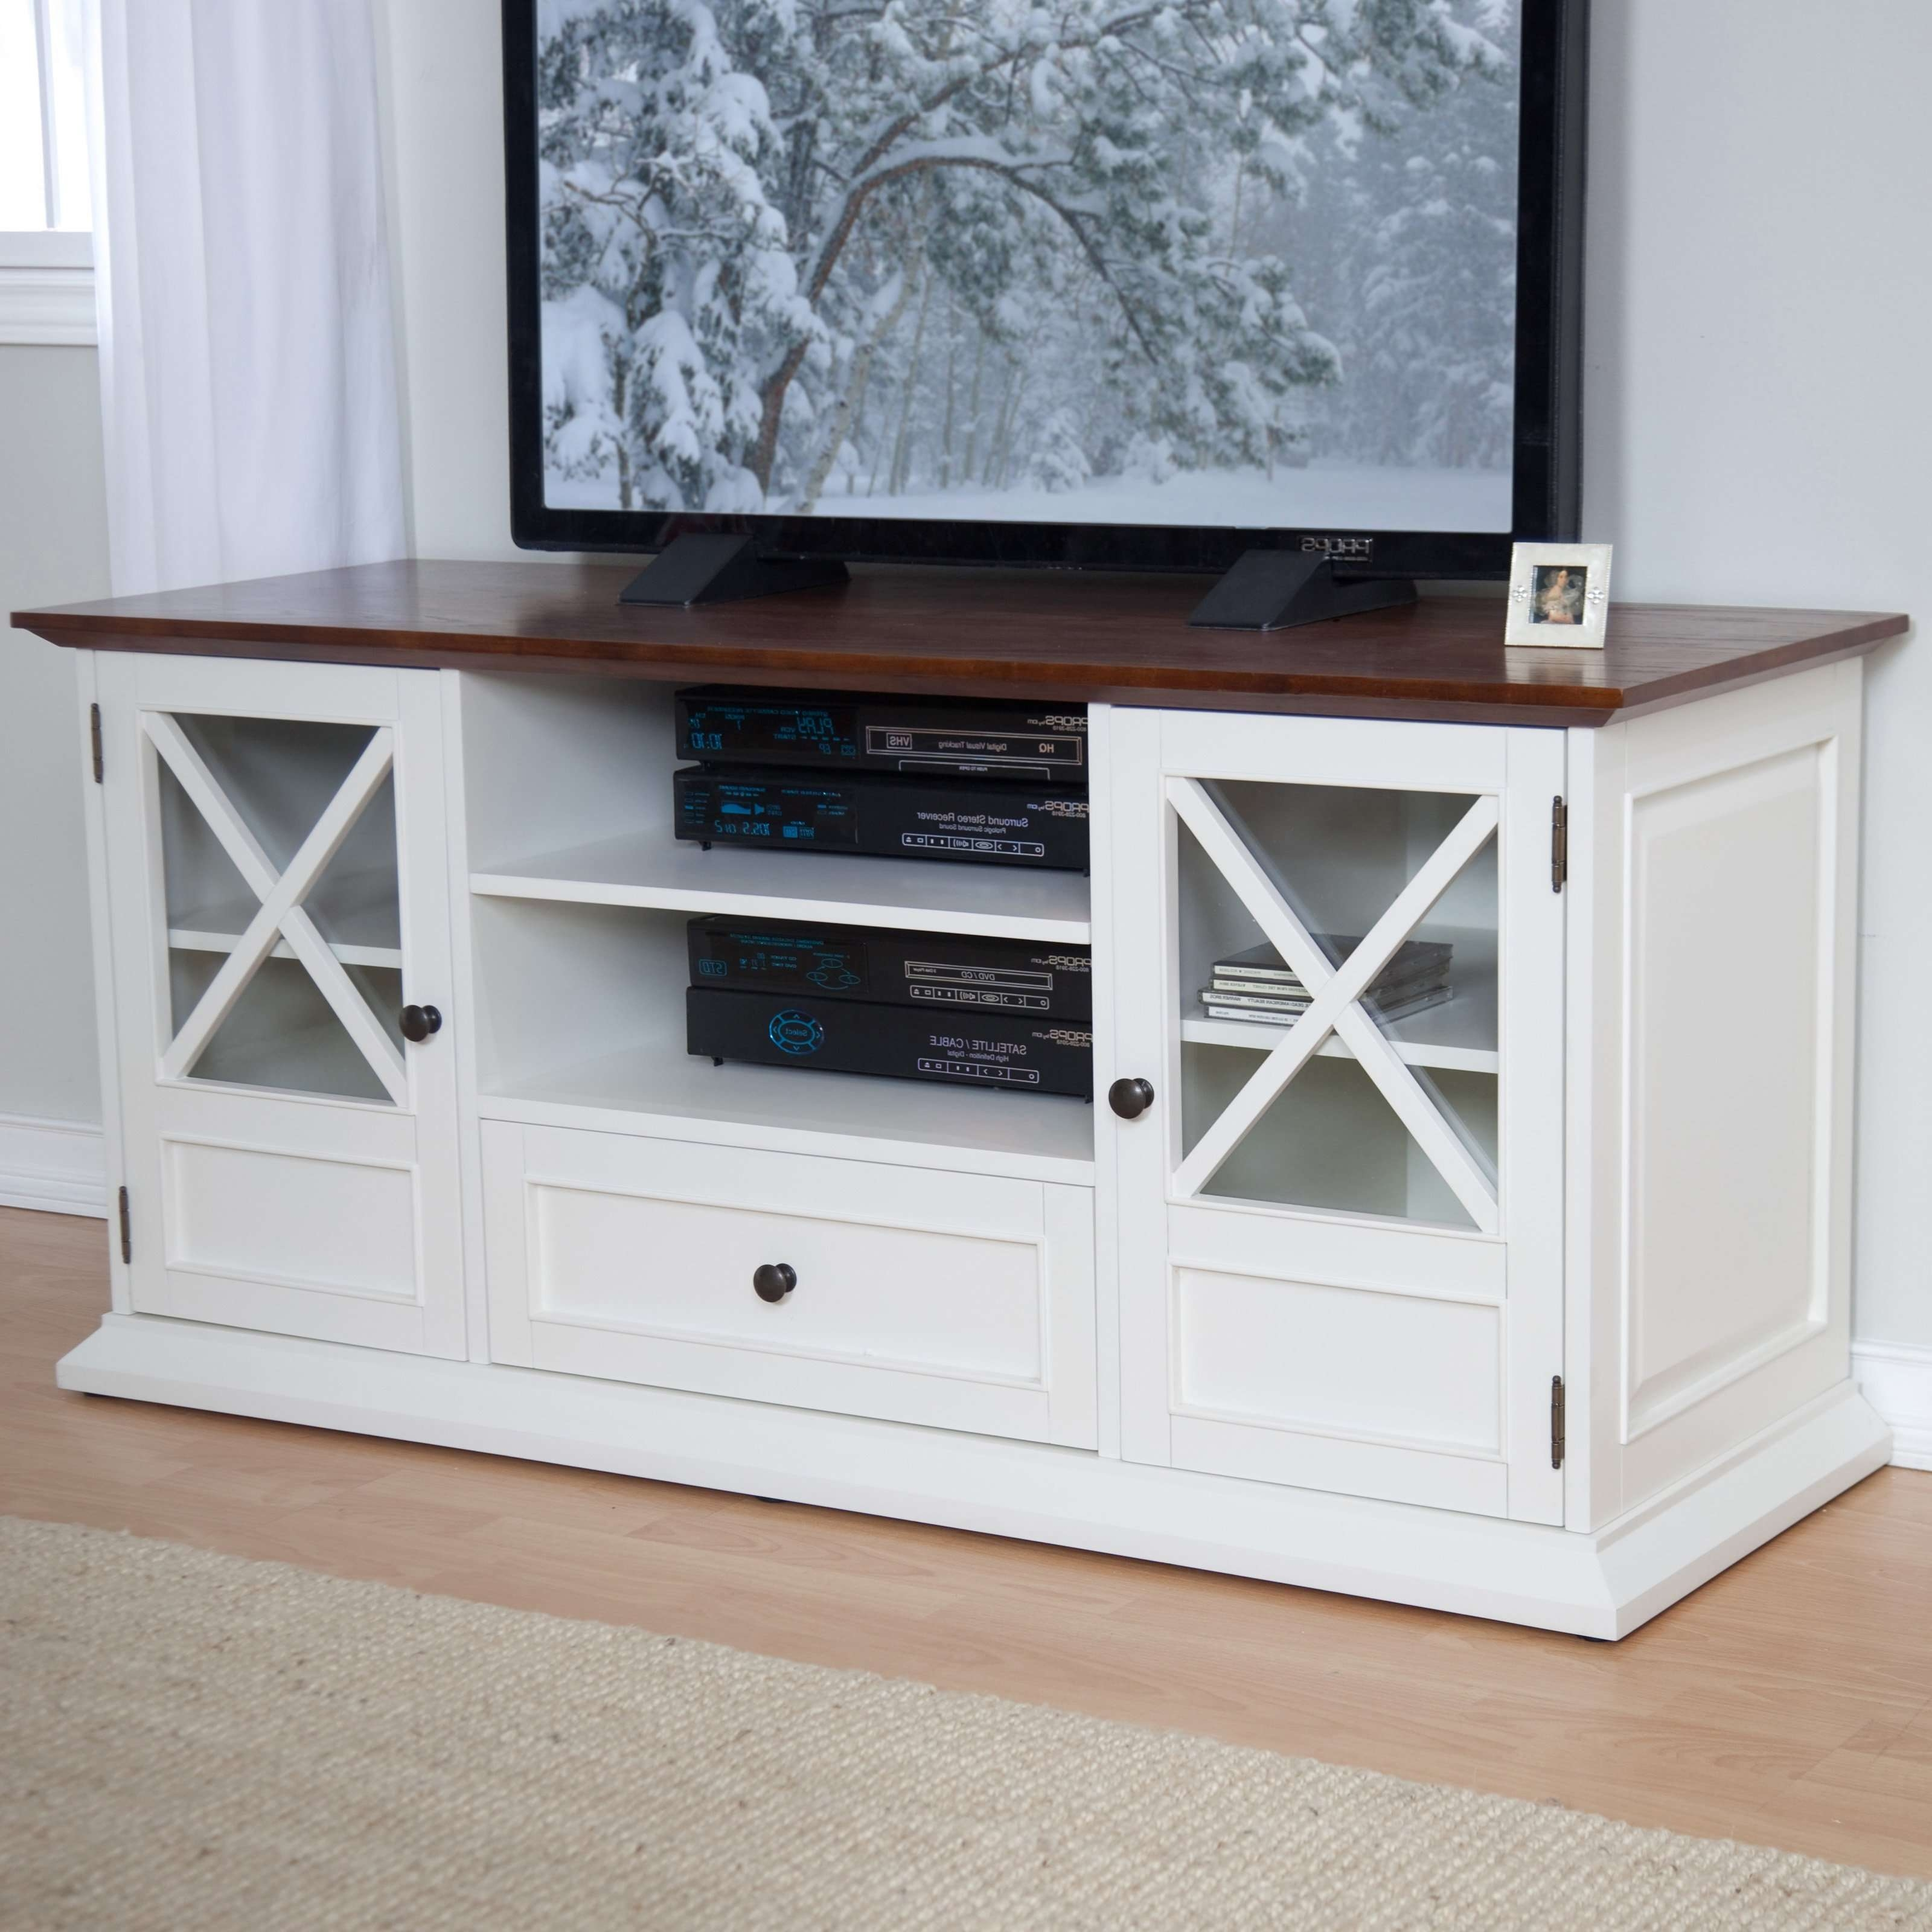 Tv Stands & Entertainment Centers | Hayneedle With Regard To Tv Stands For 43 Inch Tv (View 15 of 15)